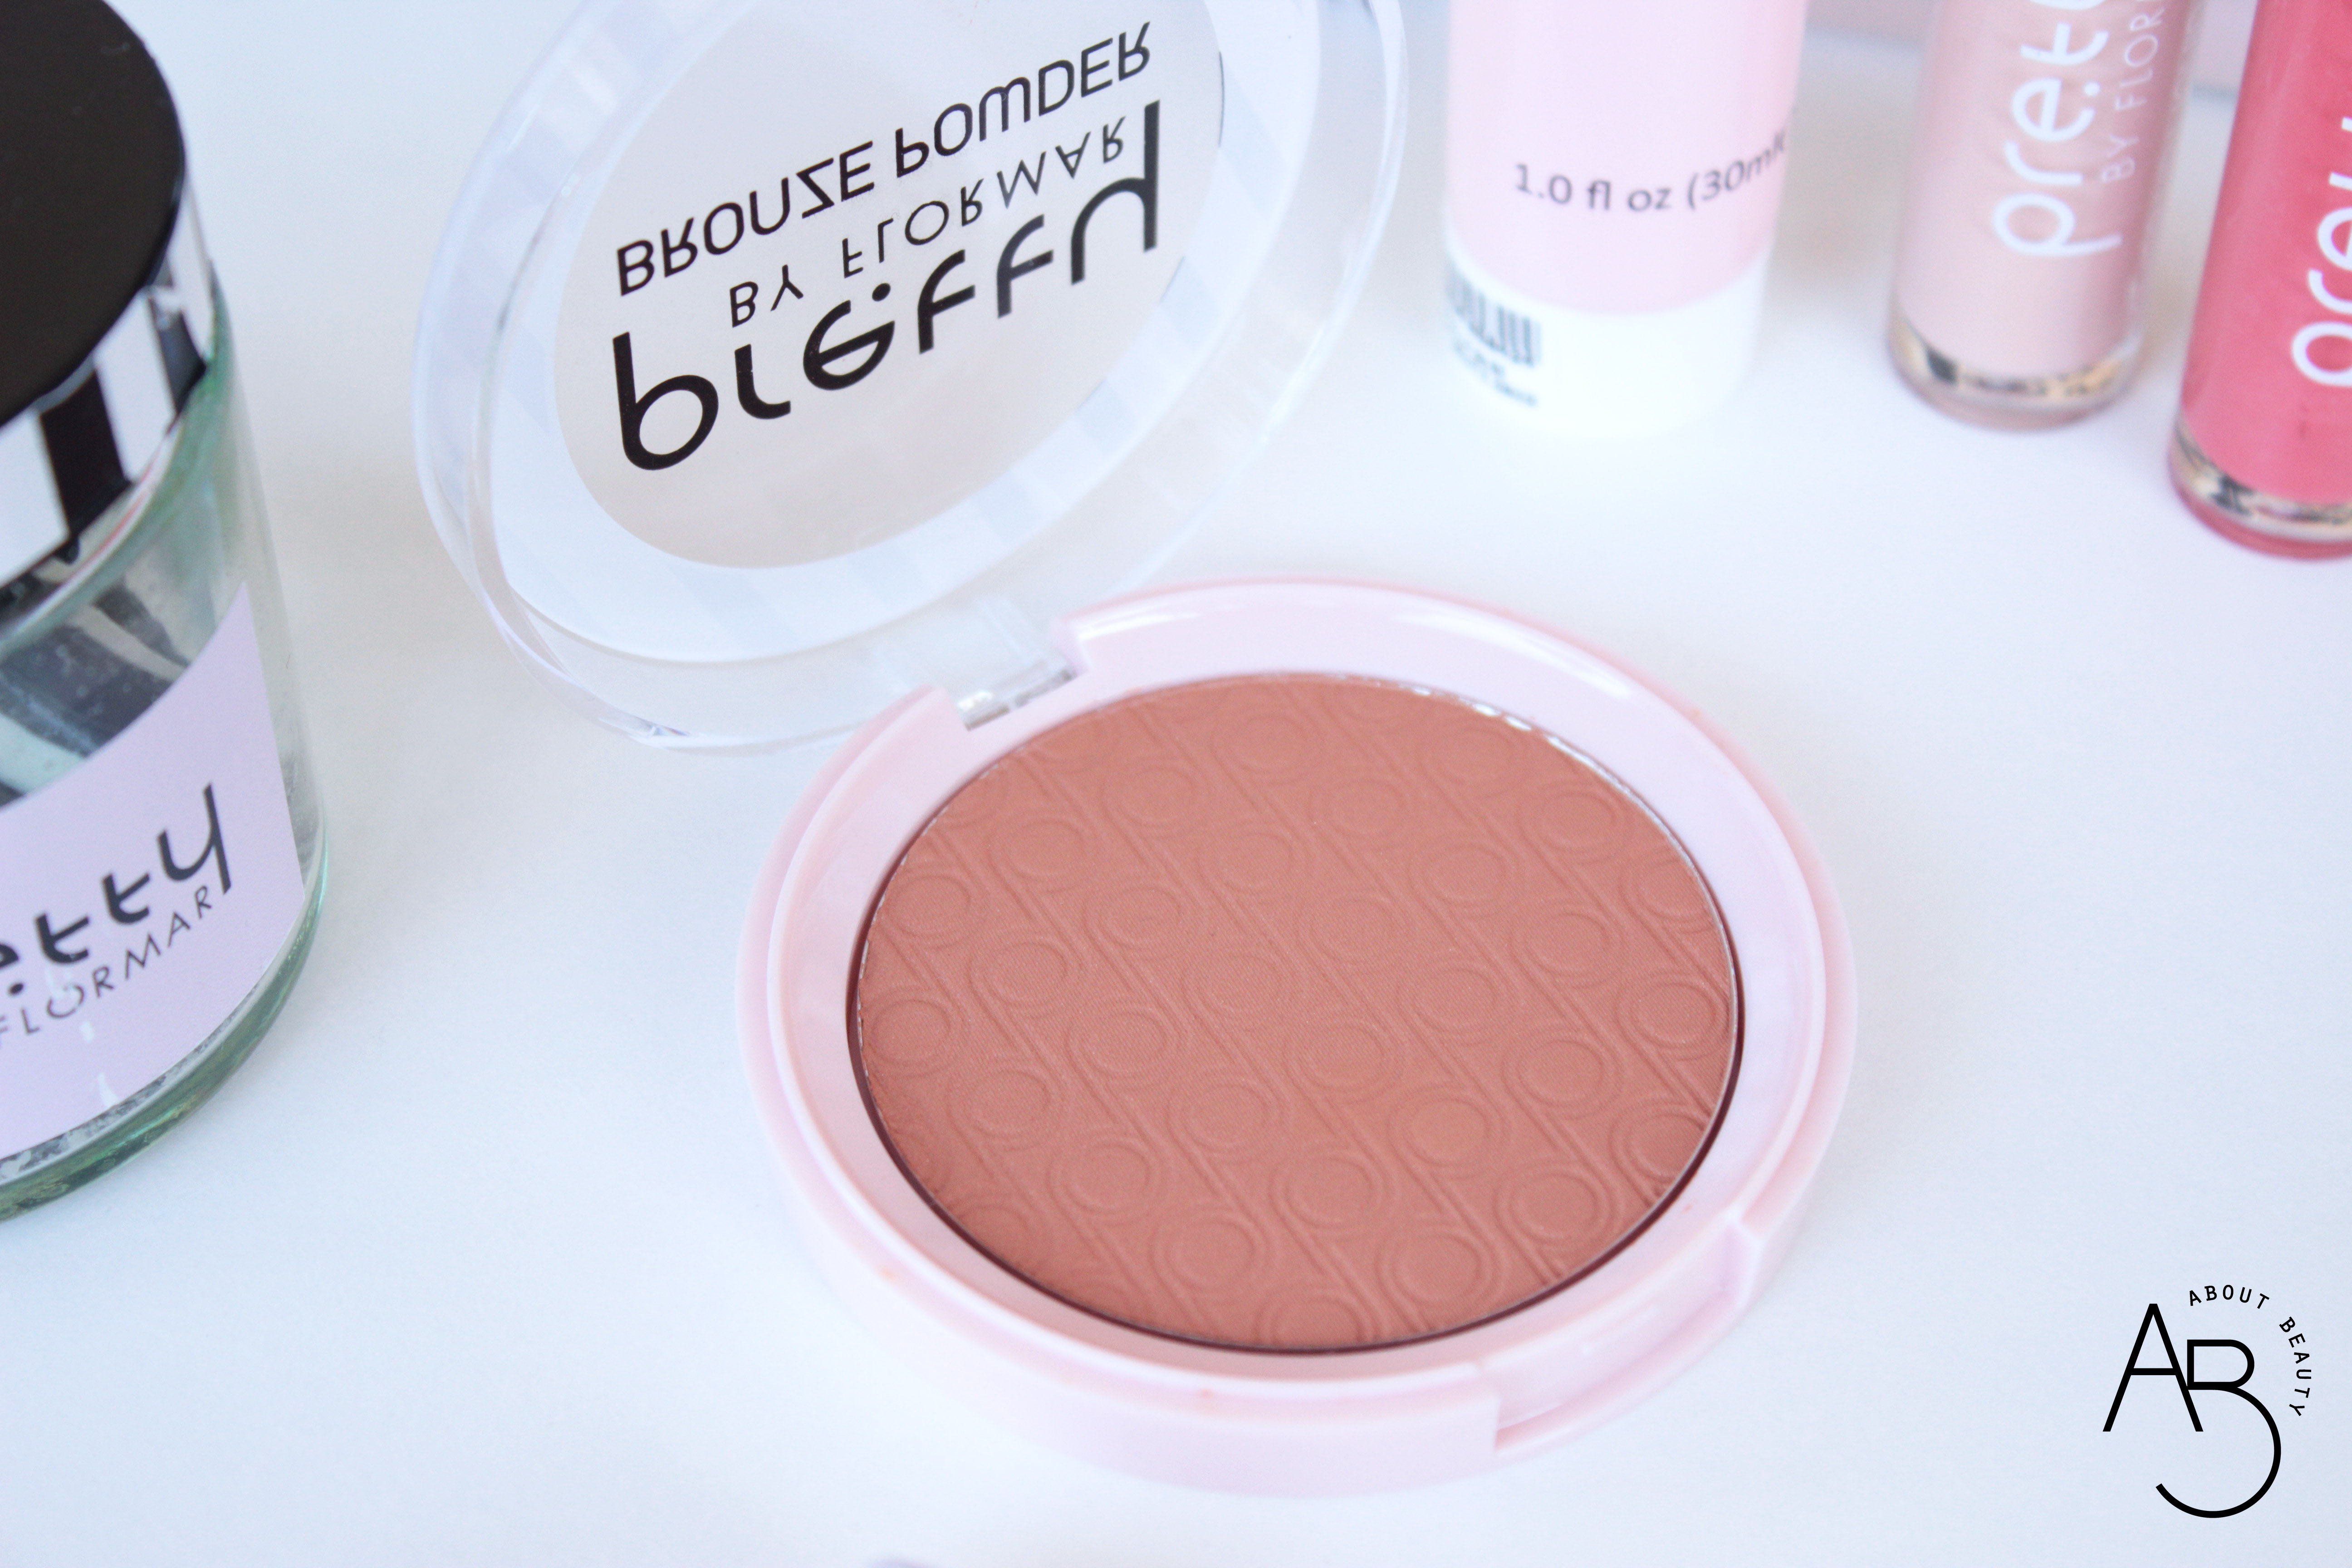 Pretty by Flormar, la nuova linea make-up low cost in esclusiva da OVS - Review, recensione, opinioni, dove acquistare, swatch - Terra Powder Bronzer e Baked Blush cotto